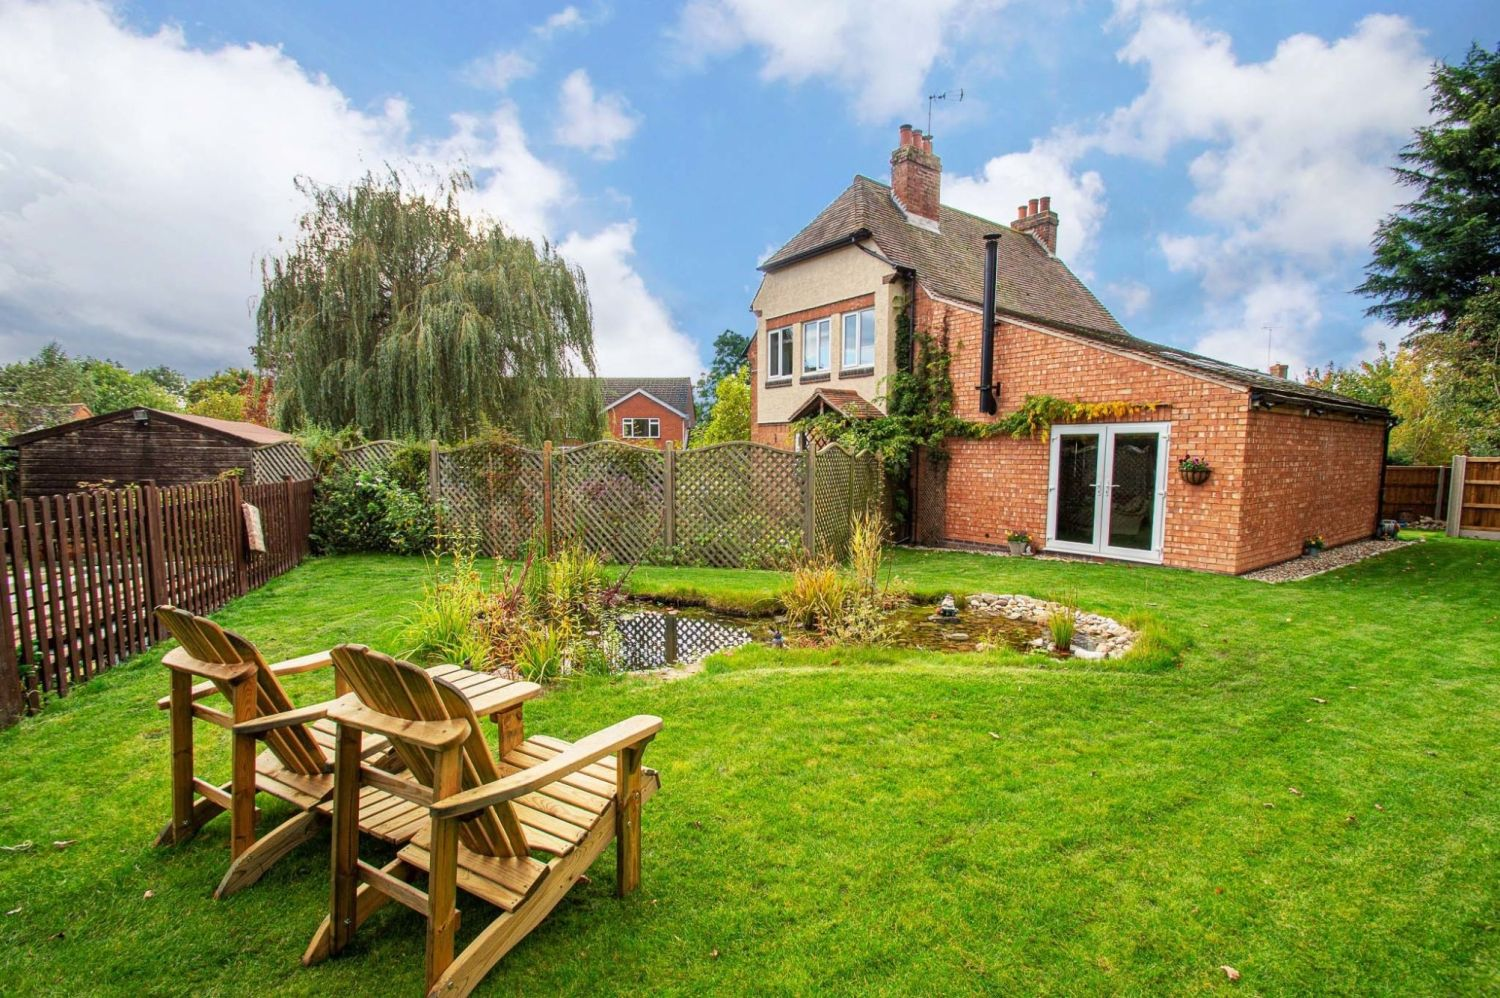 3 bed detached for sale in Longhope Close, Winyates Green 24